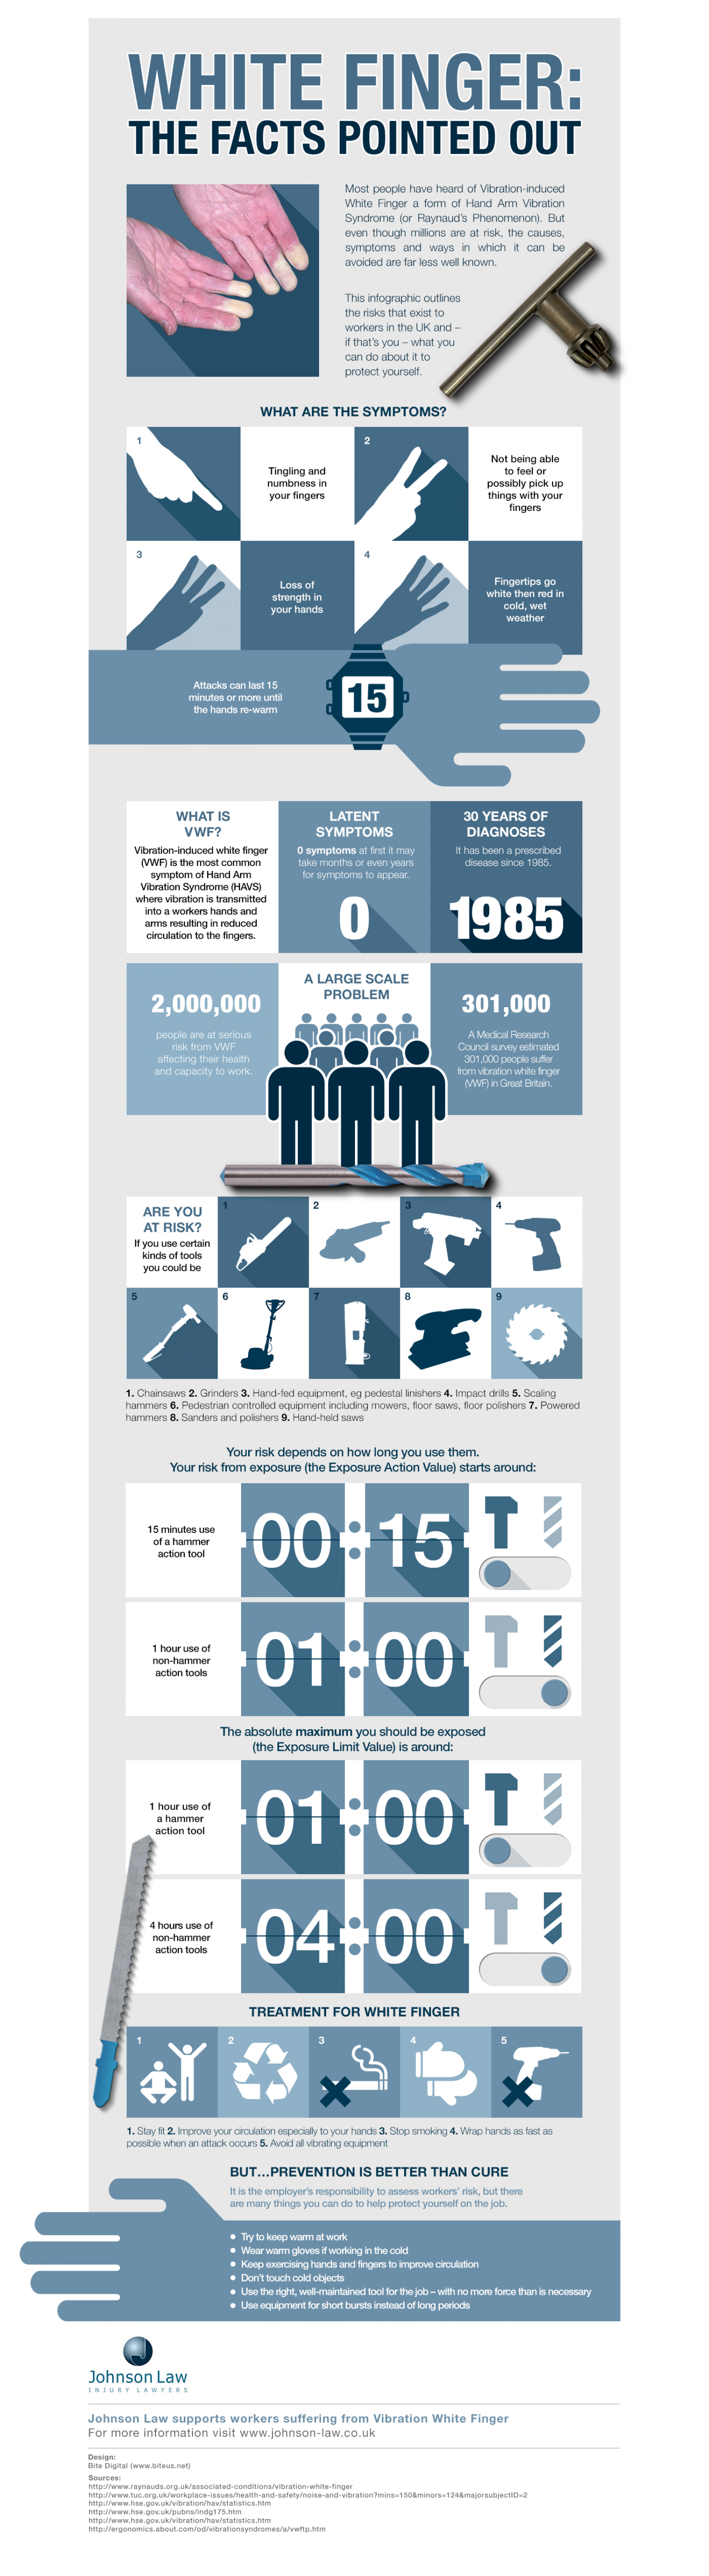 White Finger: The Facts Pointed Out Infographic